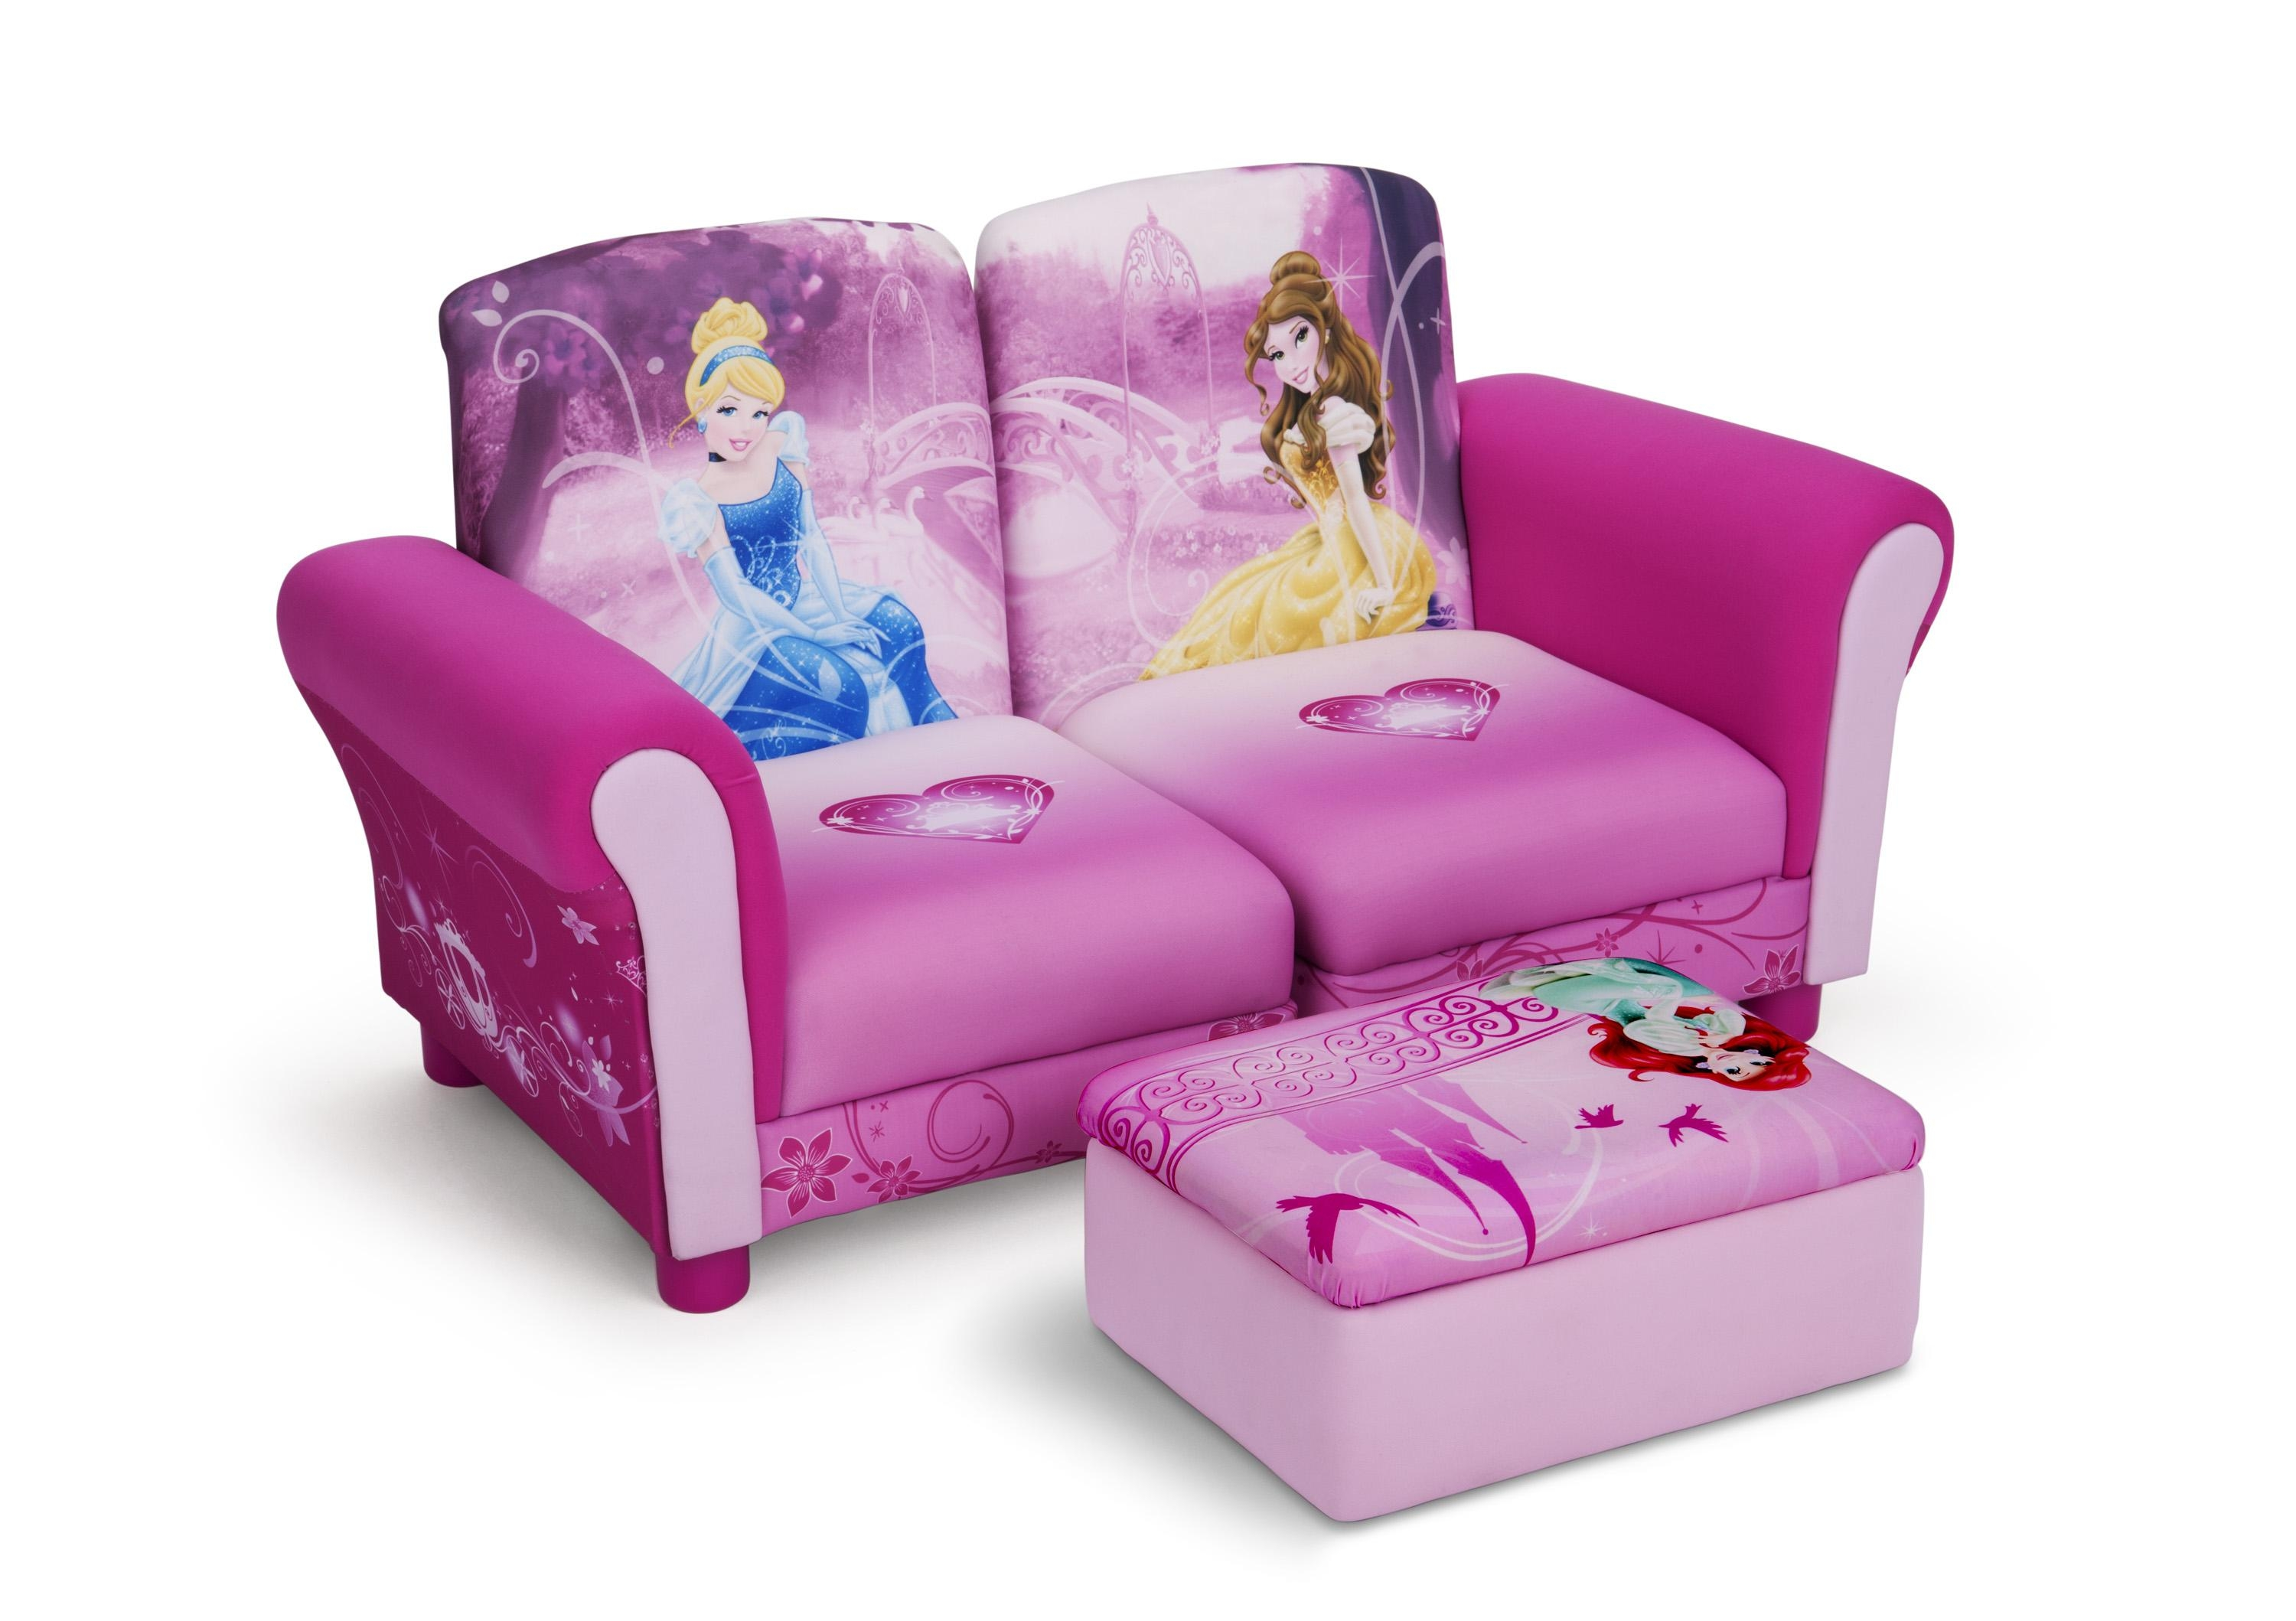 Sofas Center : 91F6A372B834 1 Sofa Chair Fordlerdlers Disney In Disney Sofas (Image 11 of 20)